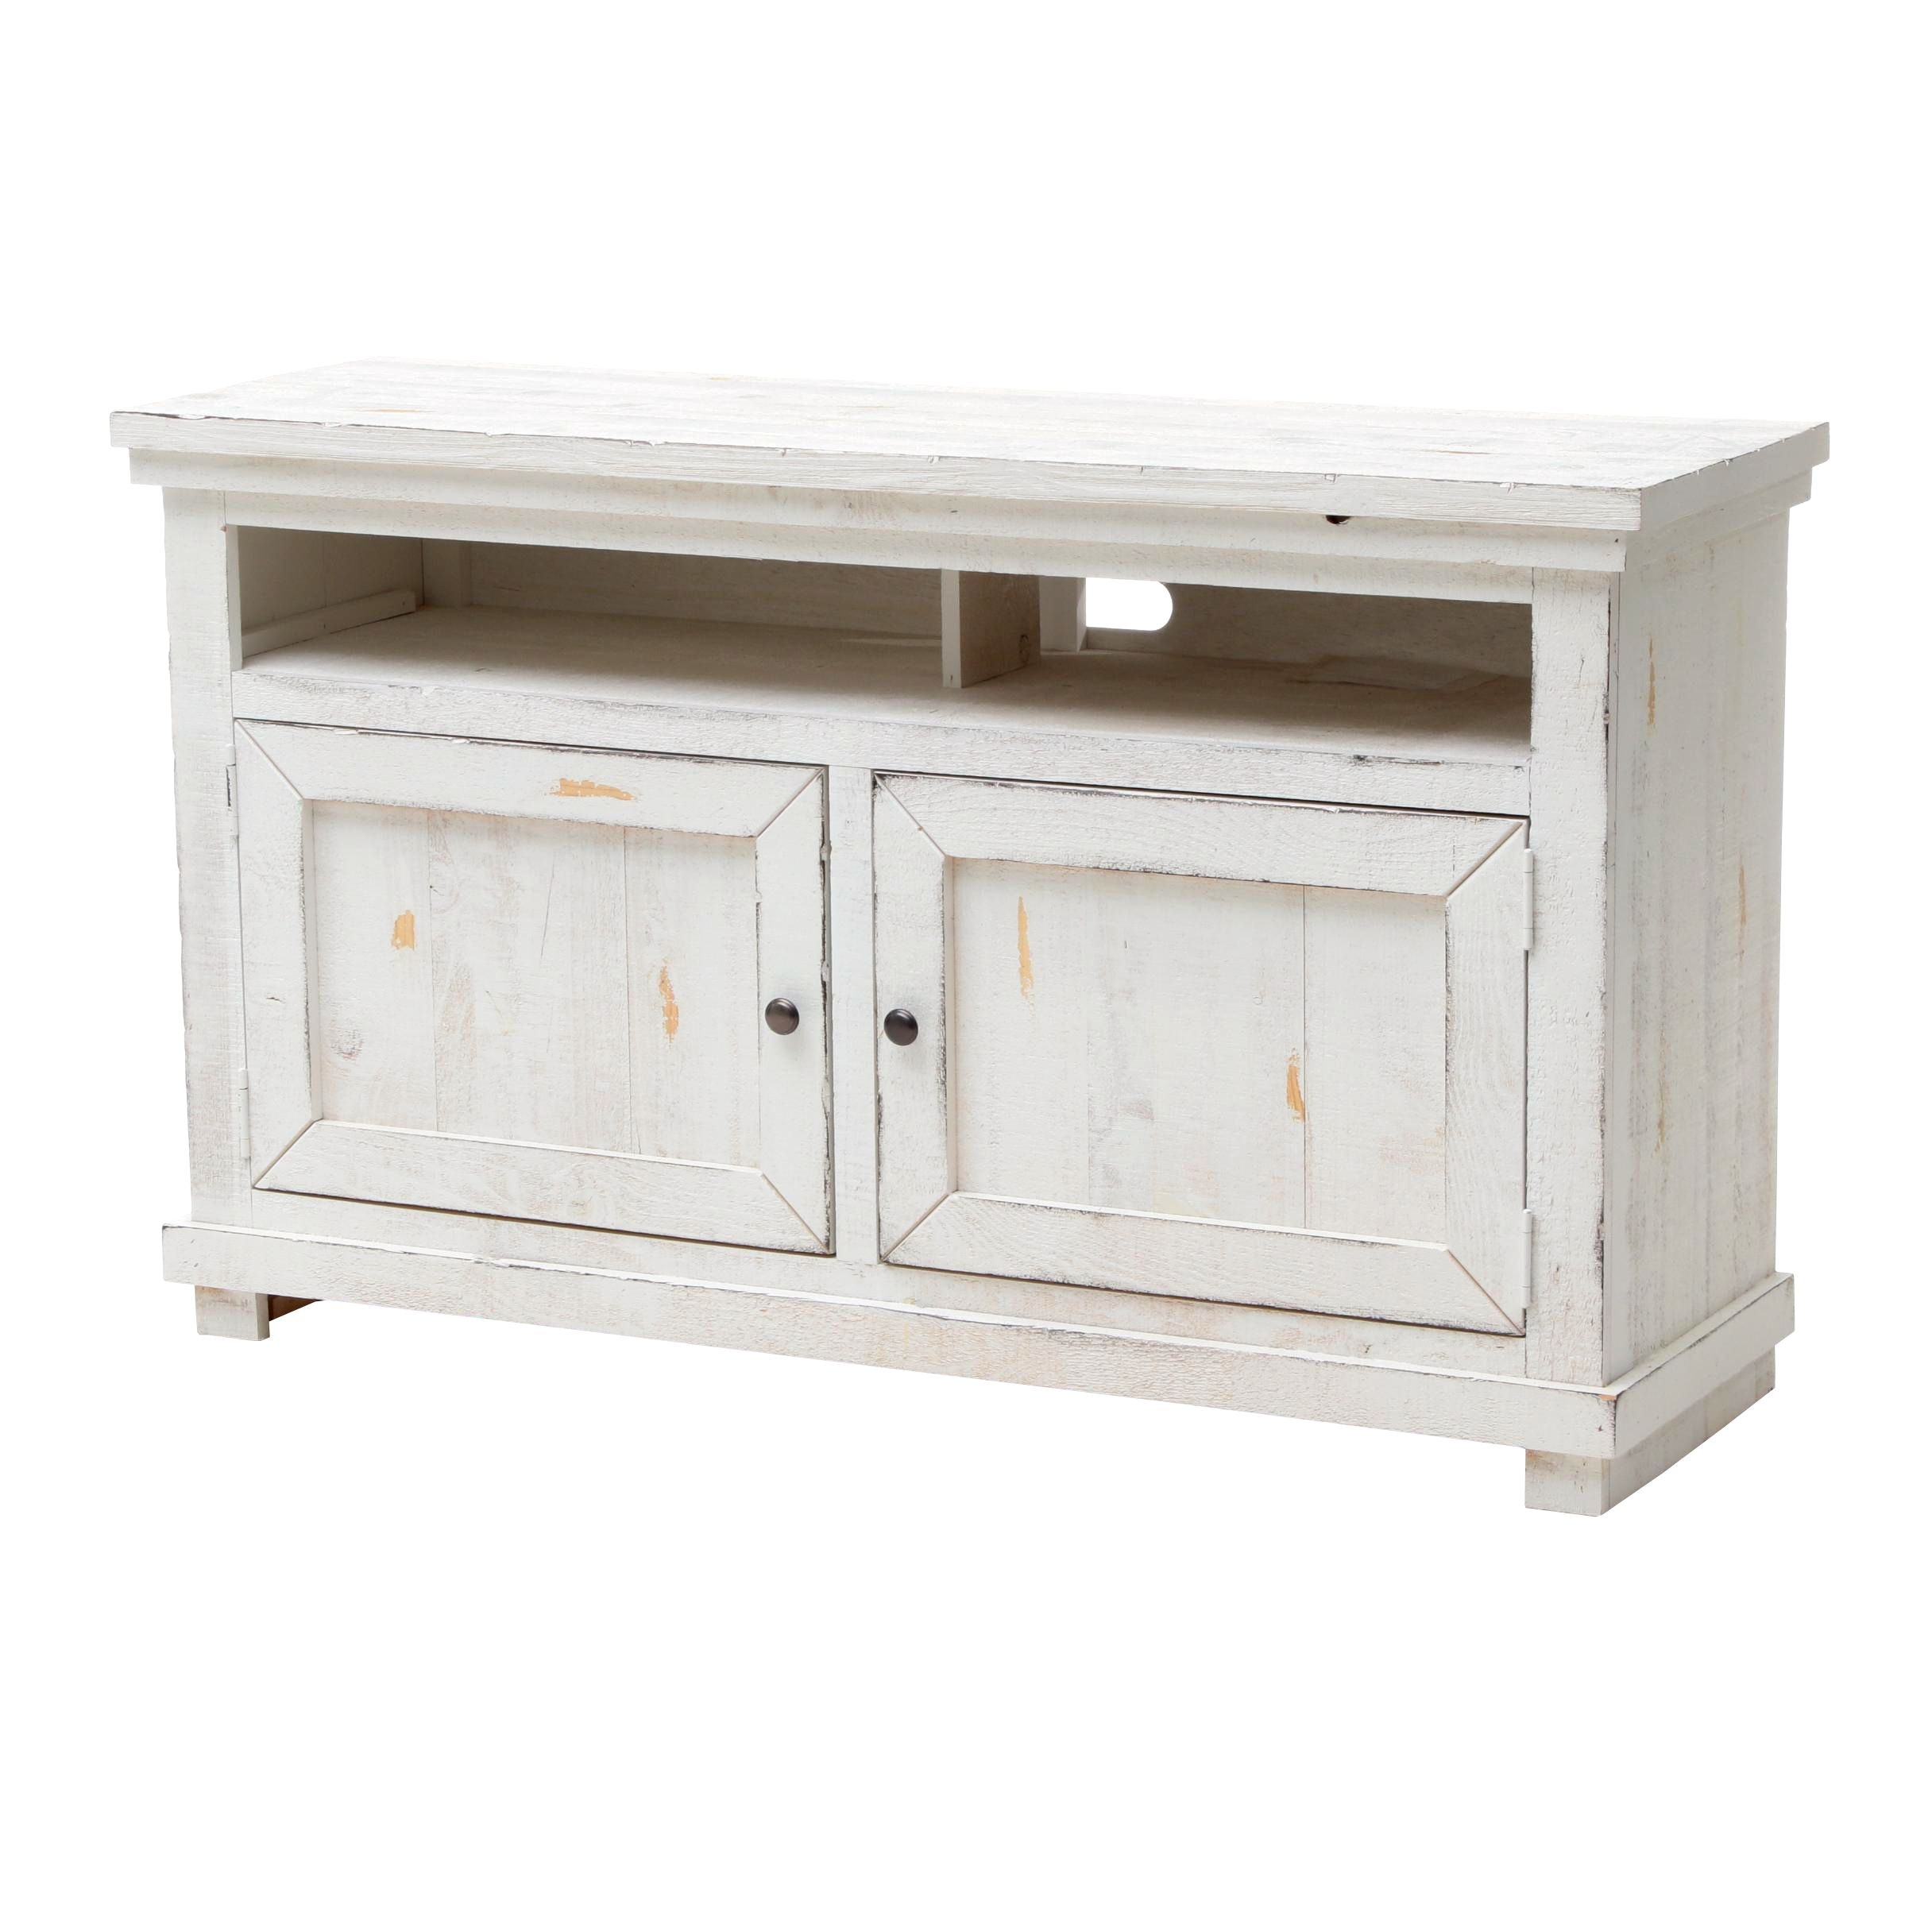 Rustic Style Media Console Cabinet by Progressive Furniture Inc.